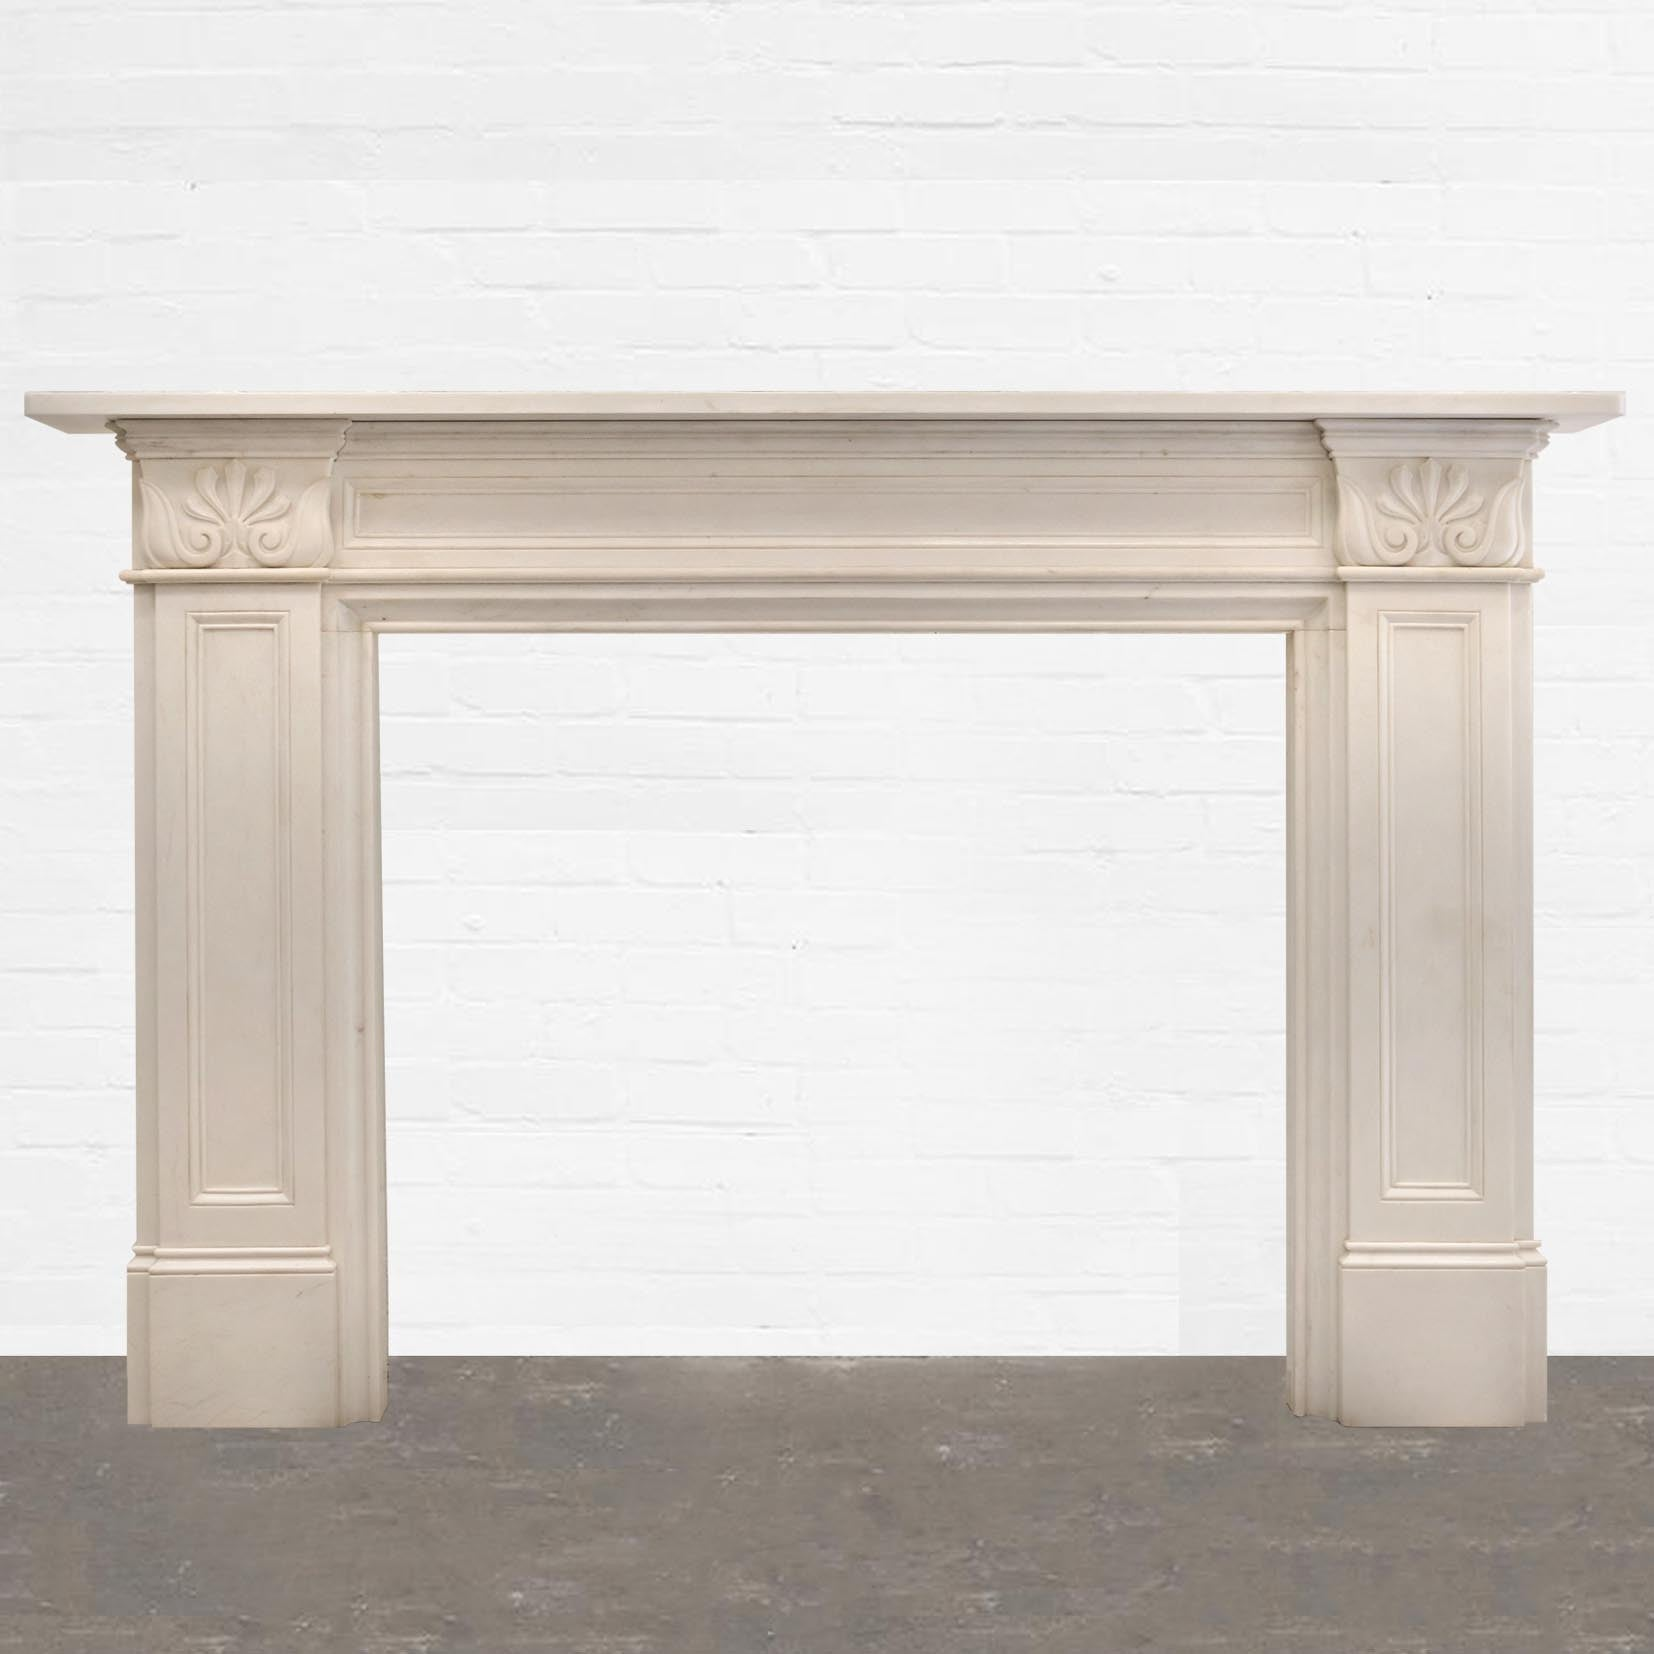 Statutory Marble Fireplace Surround - architectural-forum